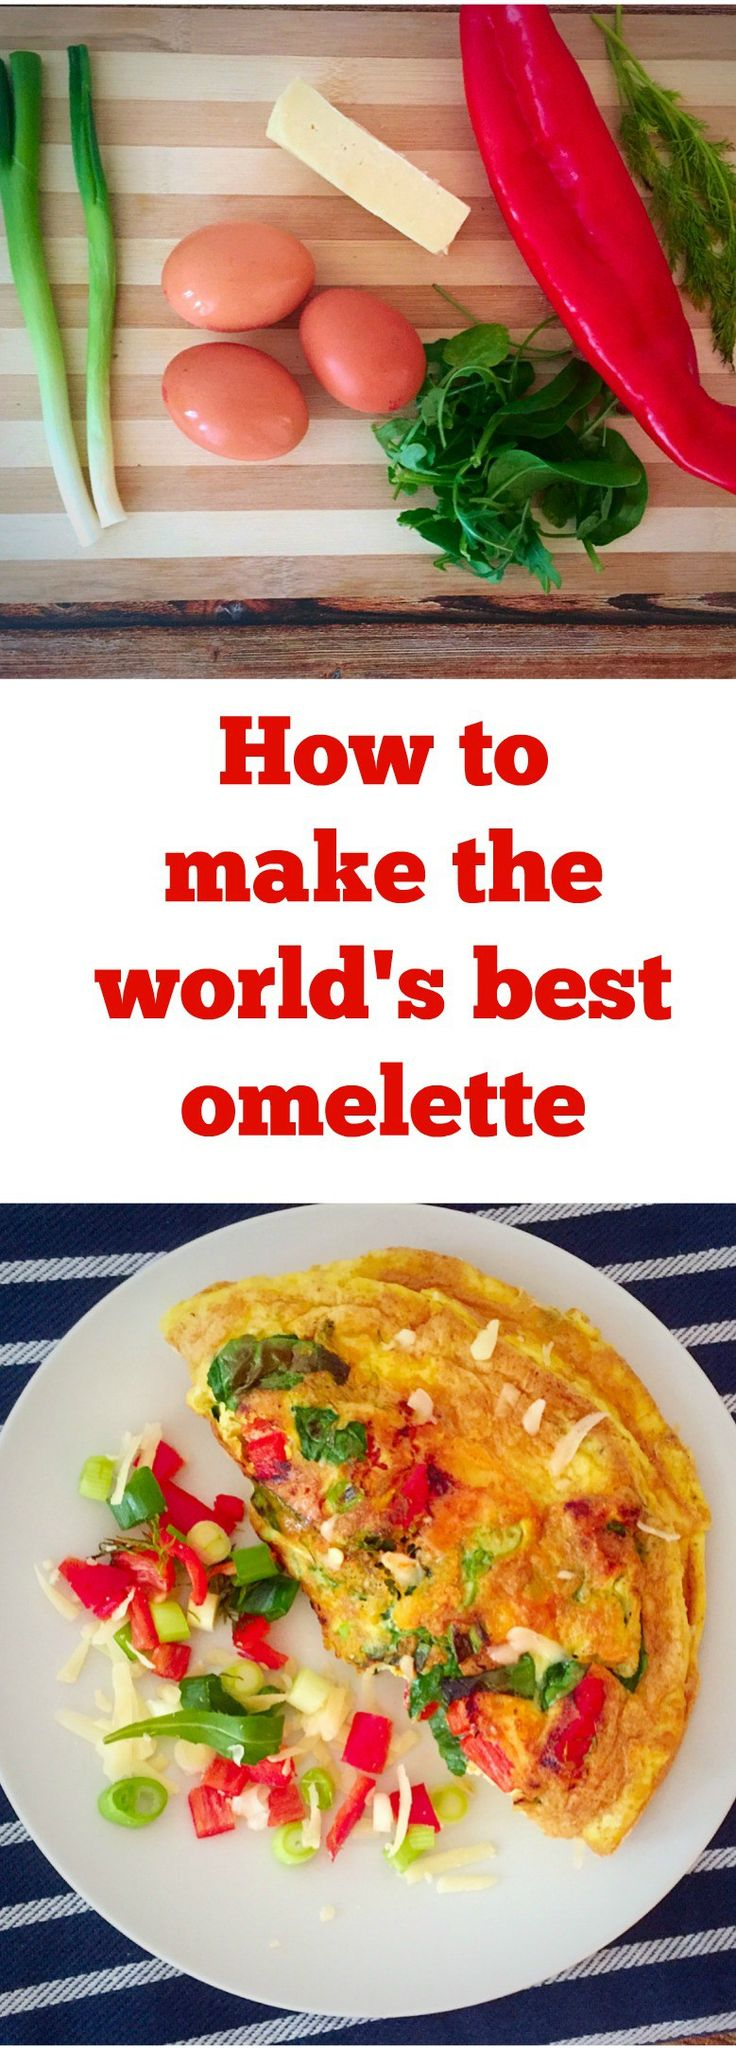 World's best omelette, an easy recipe for a healthy breakfast. Just a few ingredients, eggs, spring onions, red pepper, cheese and breakfast is ready.Healthy recipes are never boring.